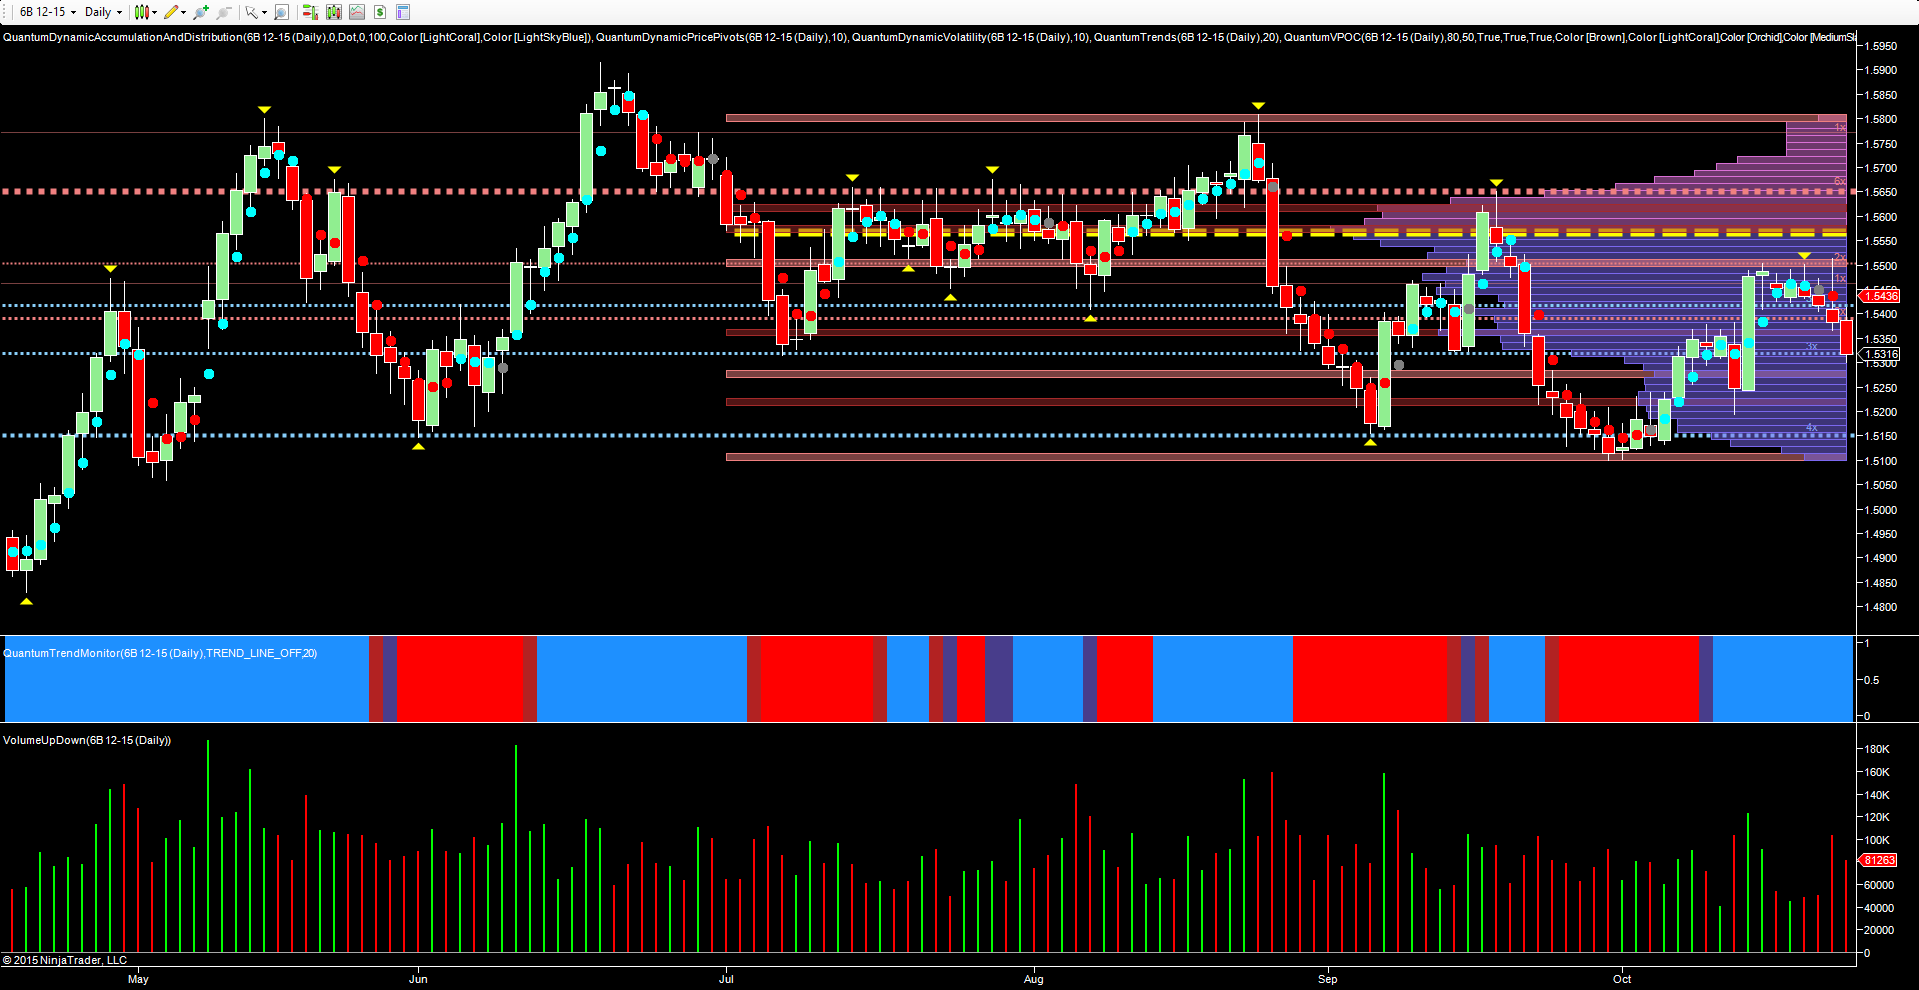 6B currency futures dialy chart